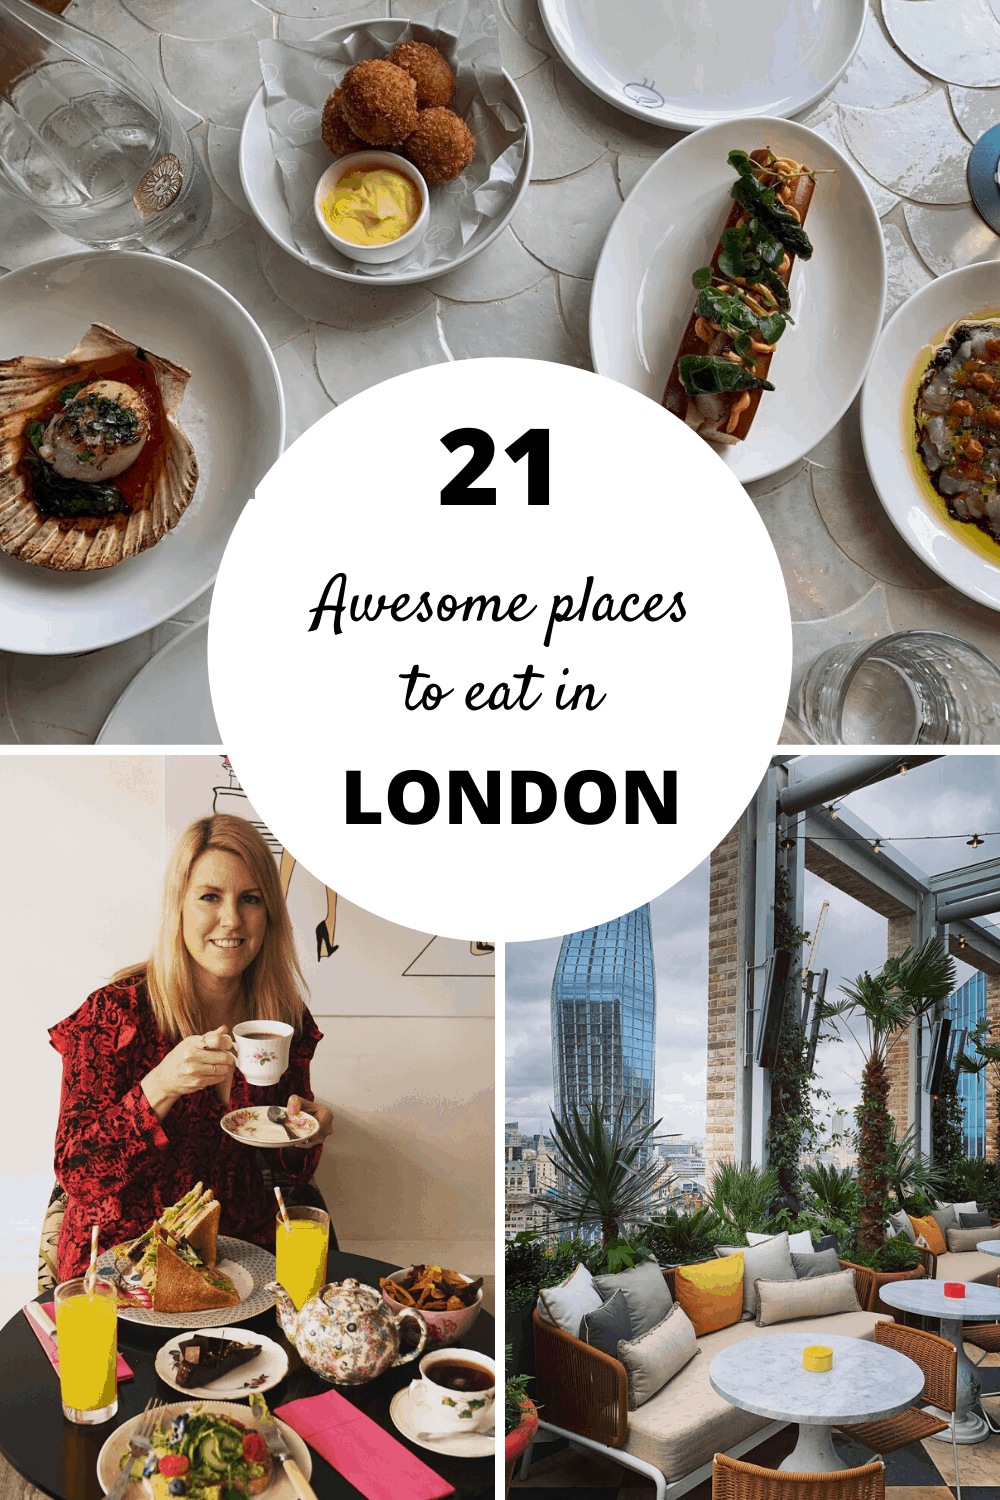 21 awesome places to eat in London